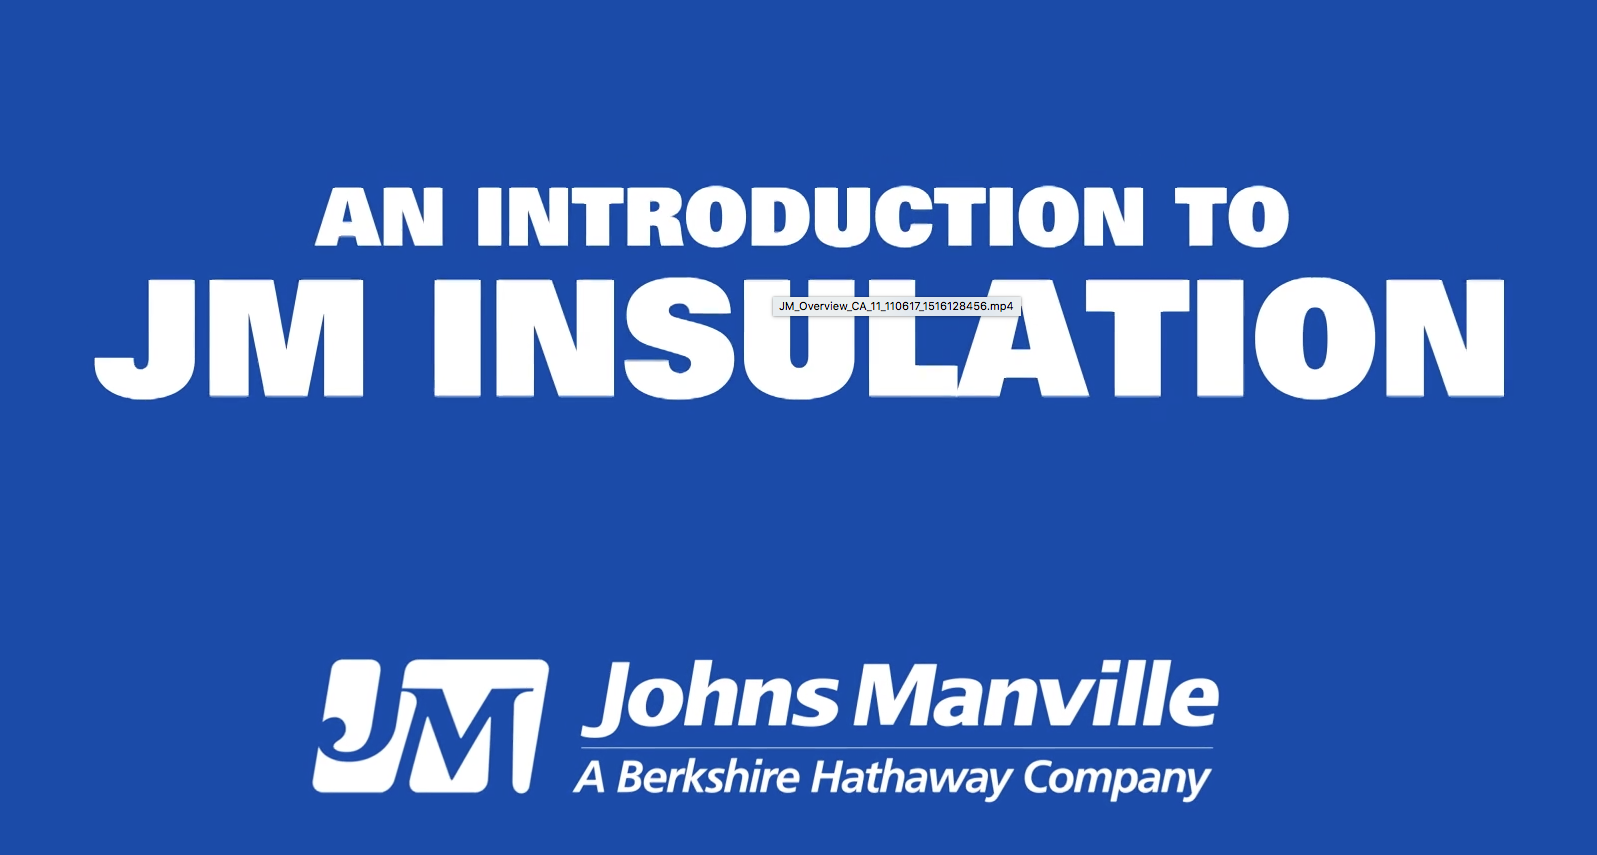 Introduction to JM Insulation